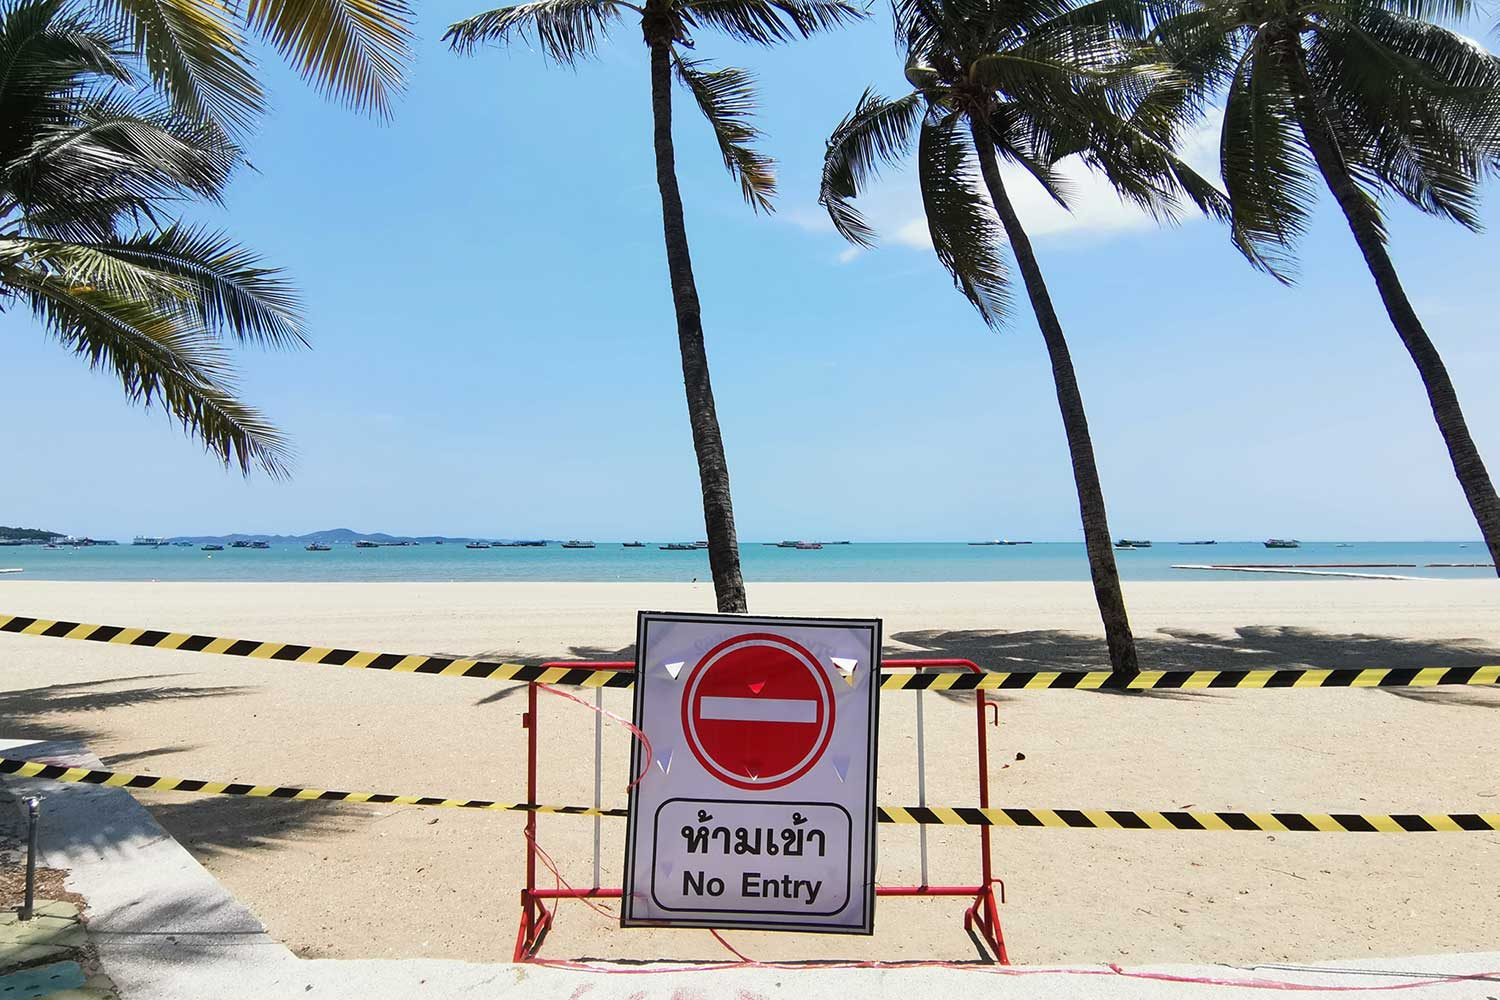 Pattaya City inspectors on Thursday begin putting up barriers at Pattaya beach and 7 other venues as authorities will close those venues from May 9 until May 31 as part of the effort to contain the spread of Covid-19. (Photo taken from @pattayacity2535 Facebook page)